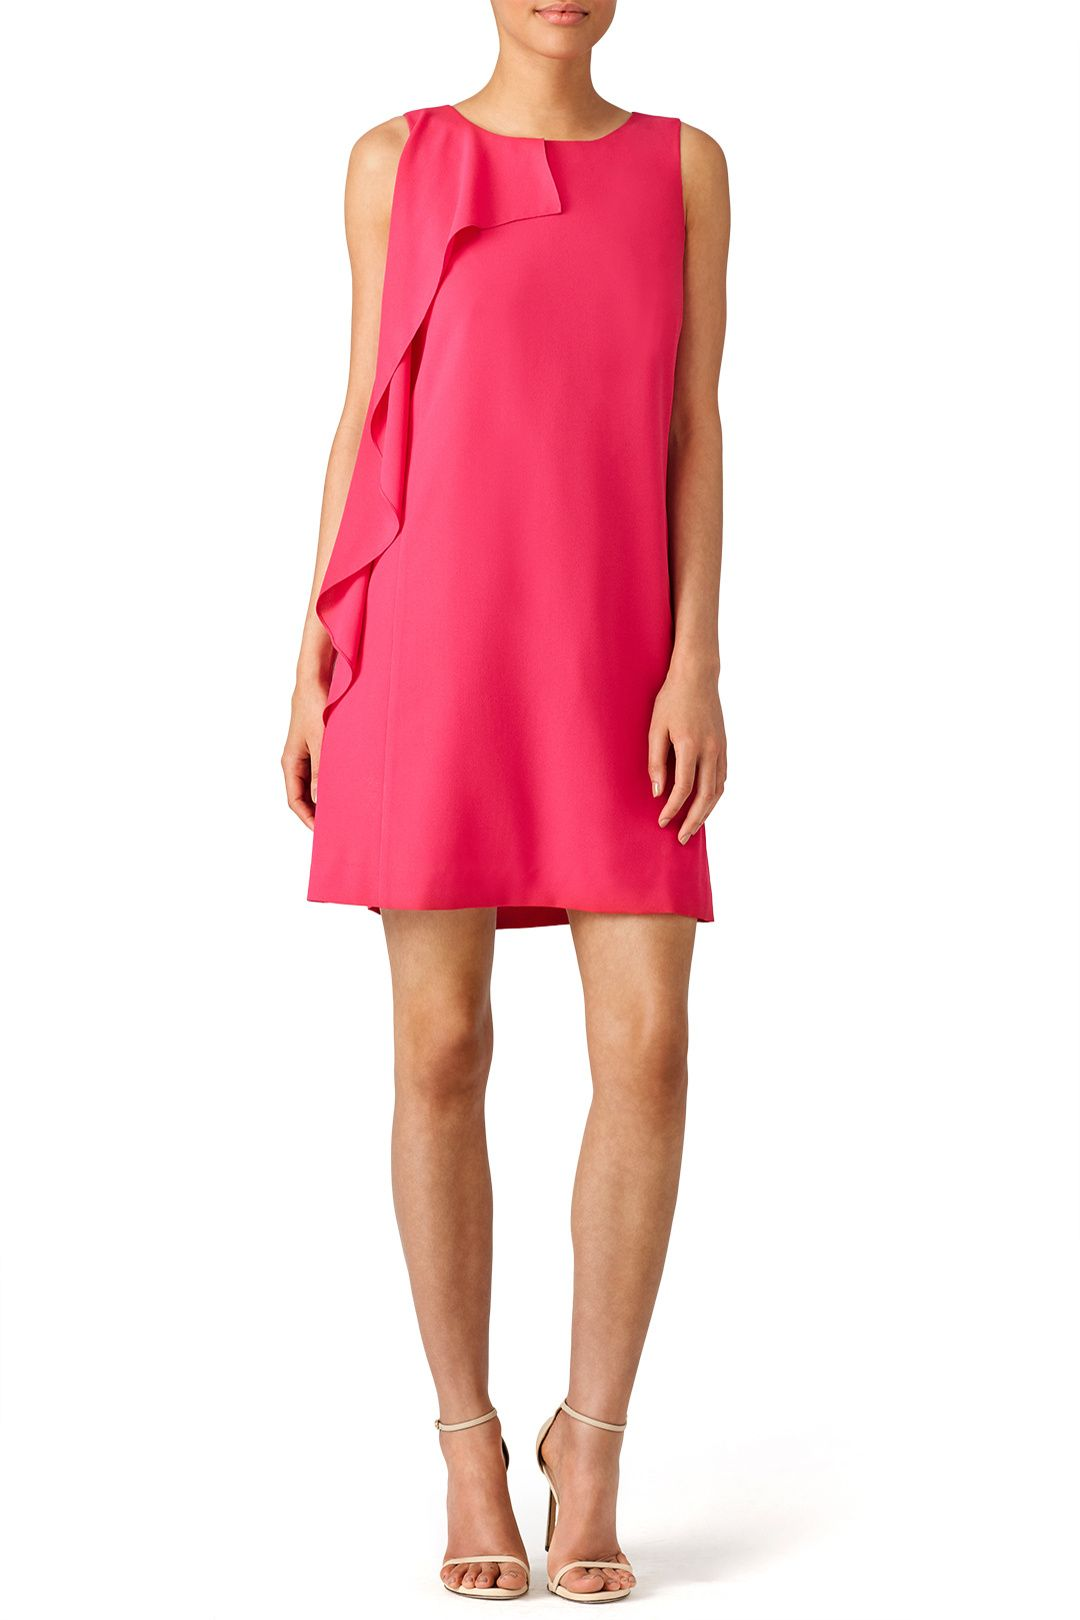 Hot pink cocktail dress with ruffle detail. Perfect for a summer ...